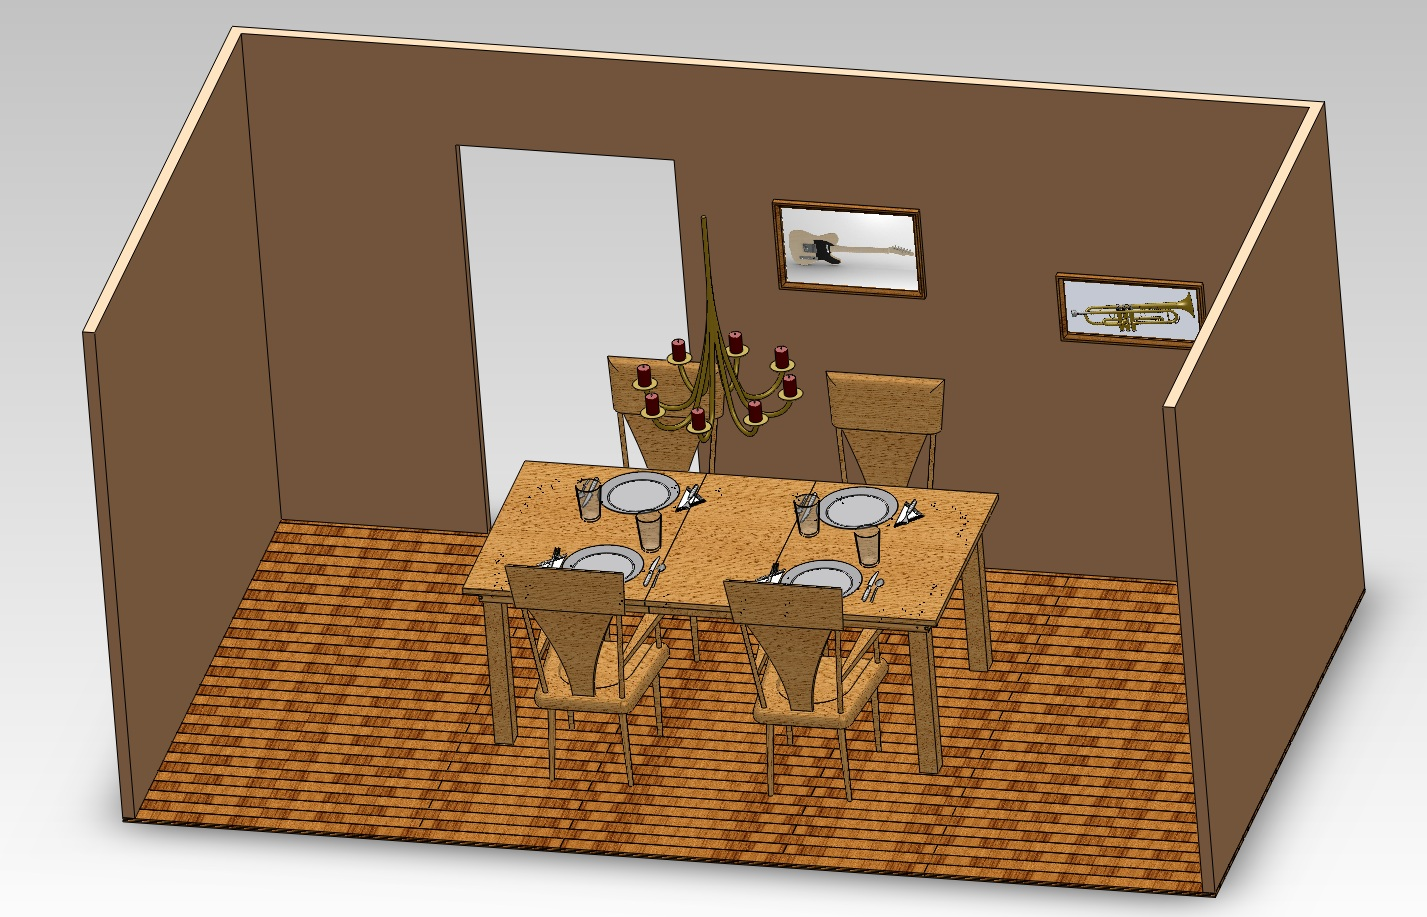 Dining Room in SolidWorks